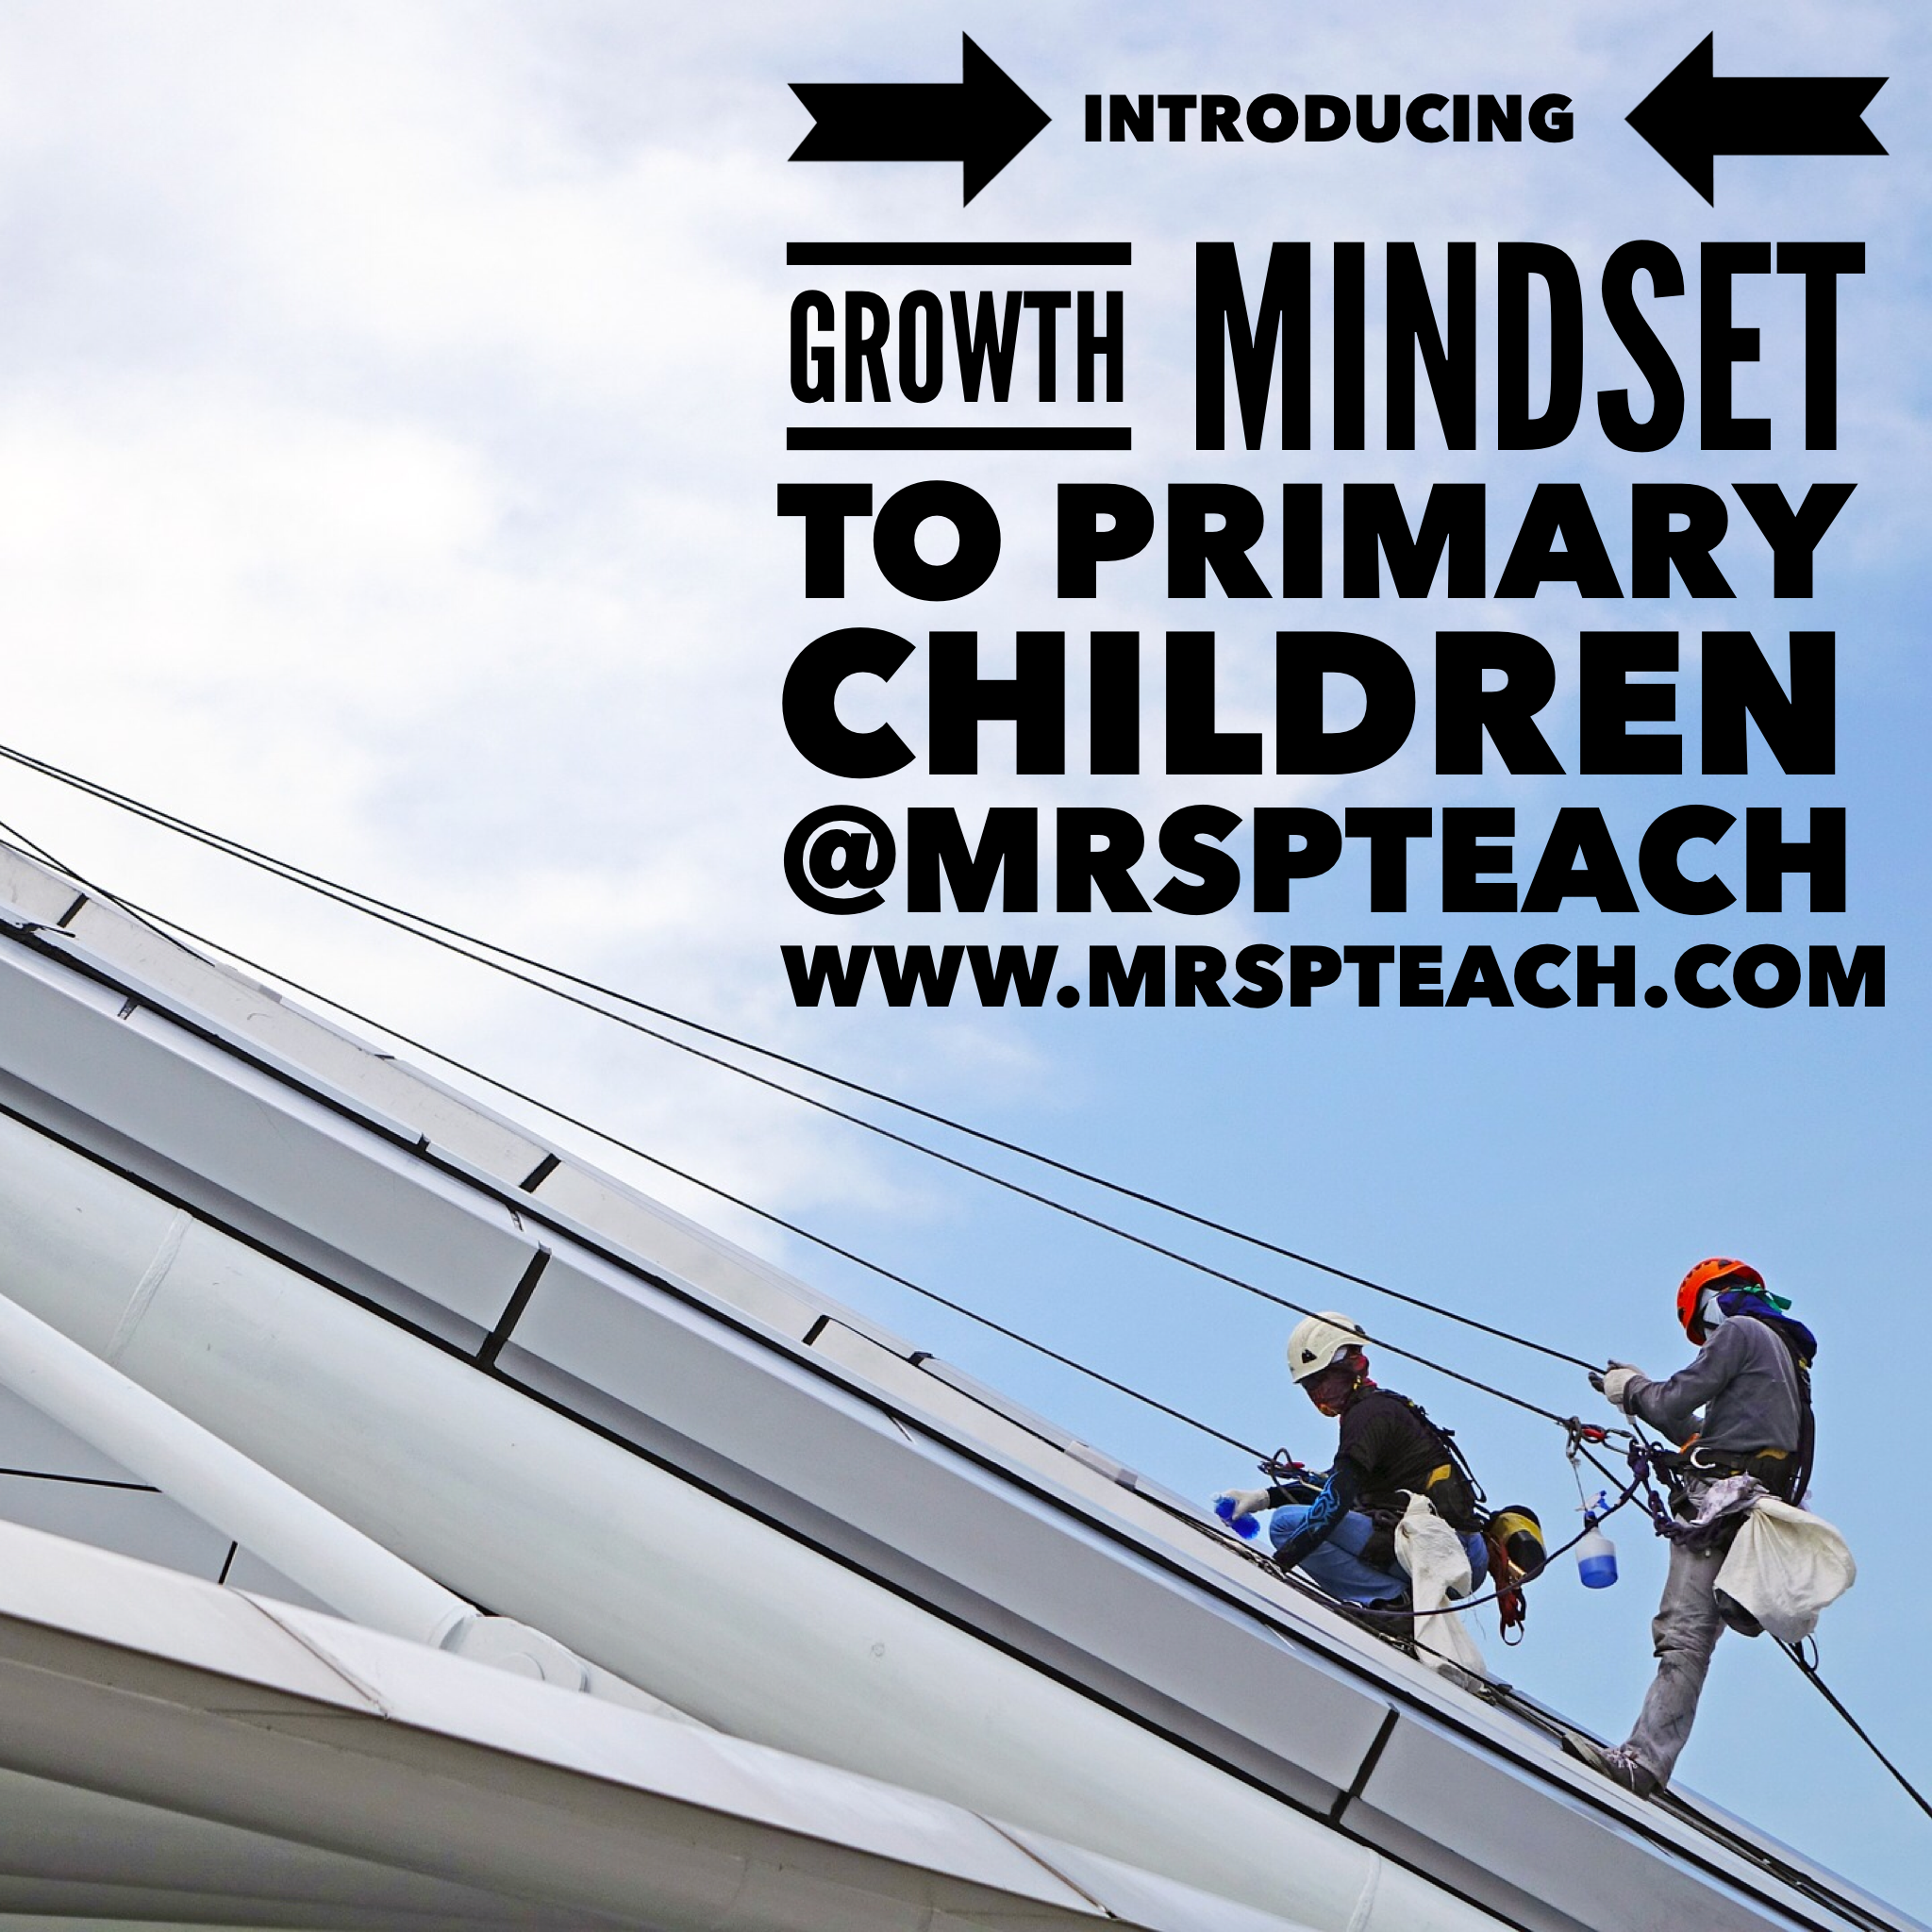 Introducing Growth Mindset To Primary Children